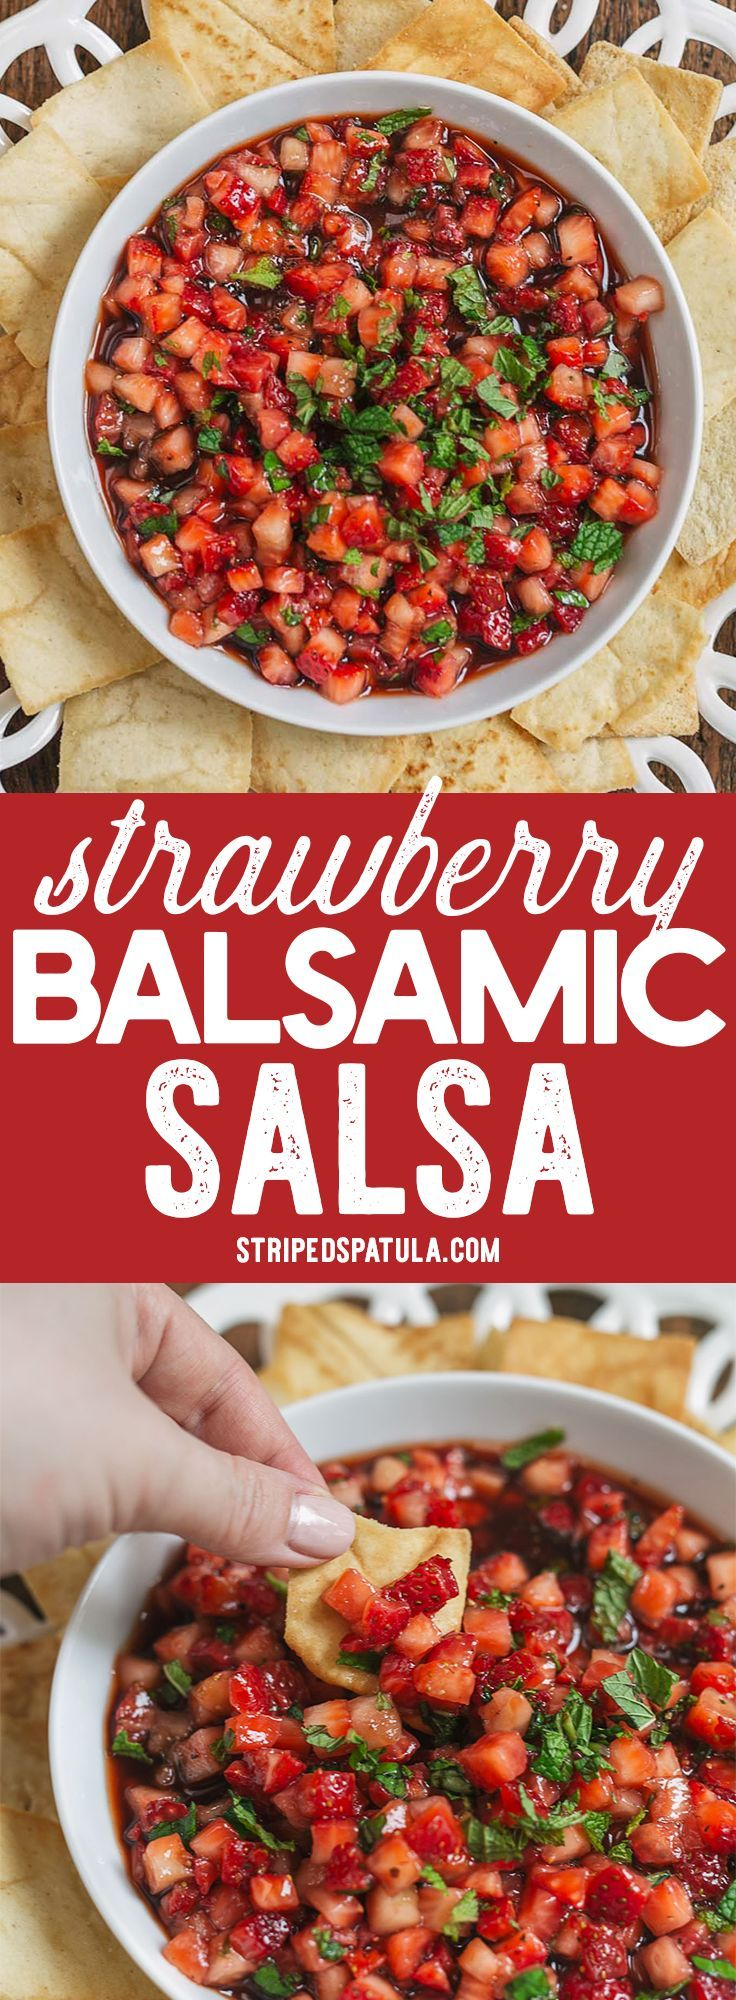 Strawberry Balsamic Salsa is a sweet, tangy, refreshing summer fruit salsa that's perfect for utilizing your farmer's market haul of berries and herbs!